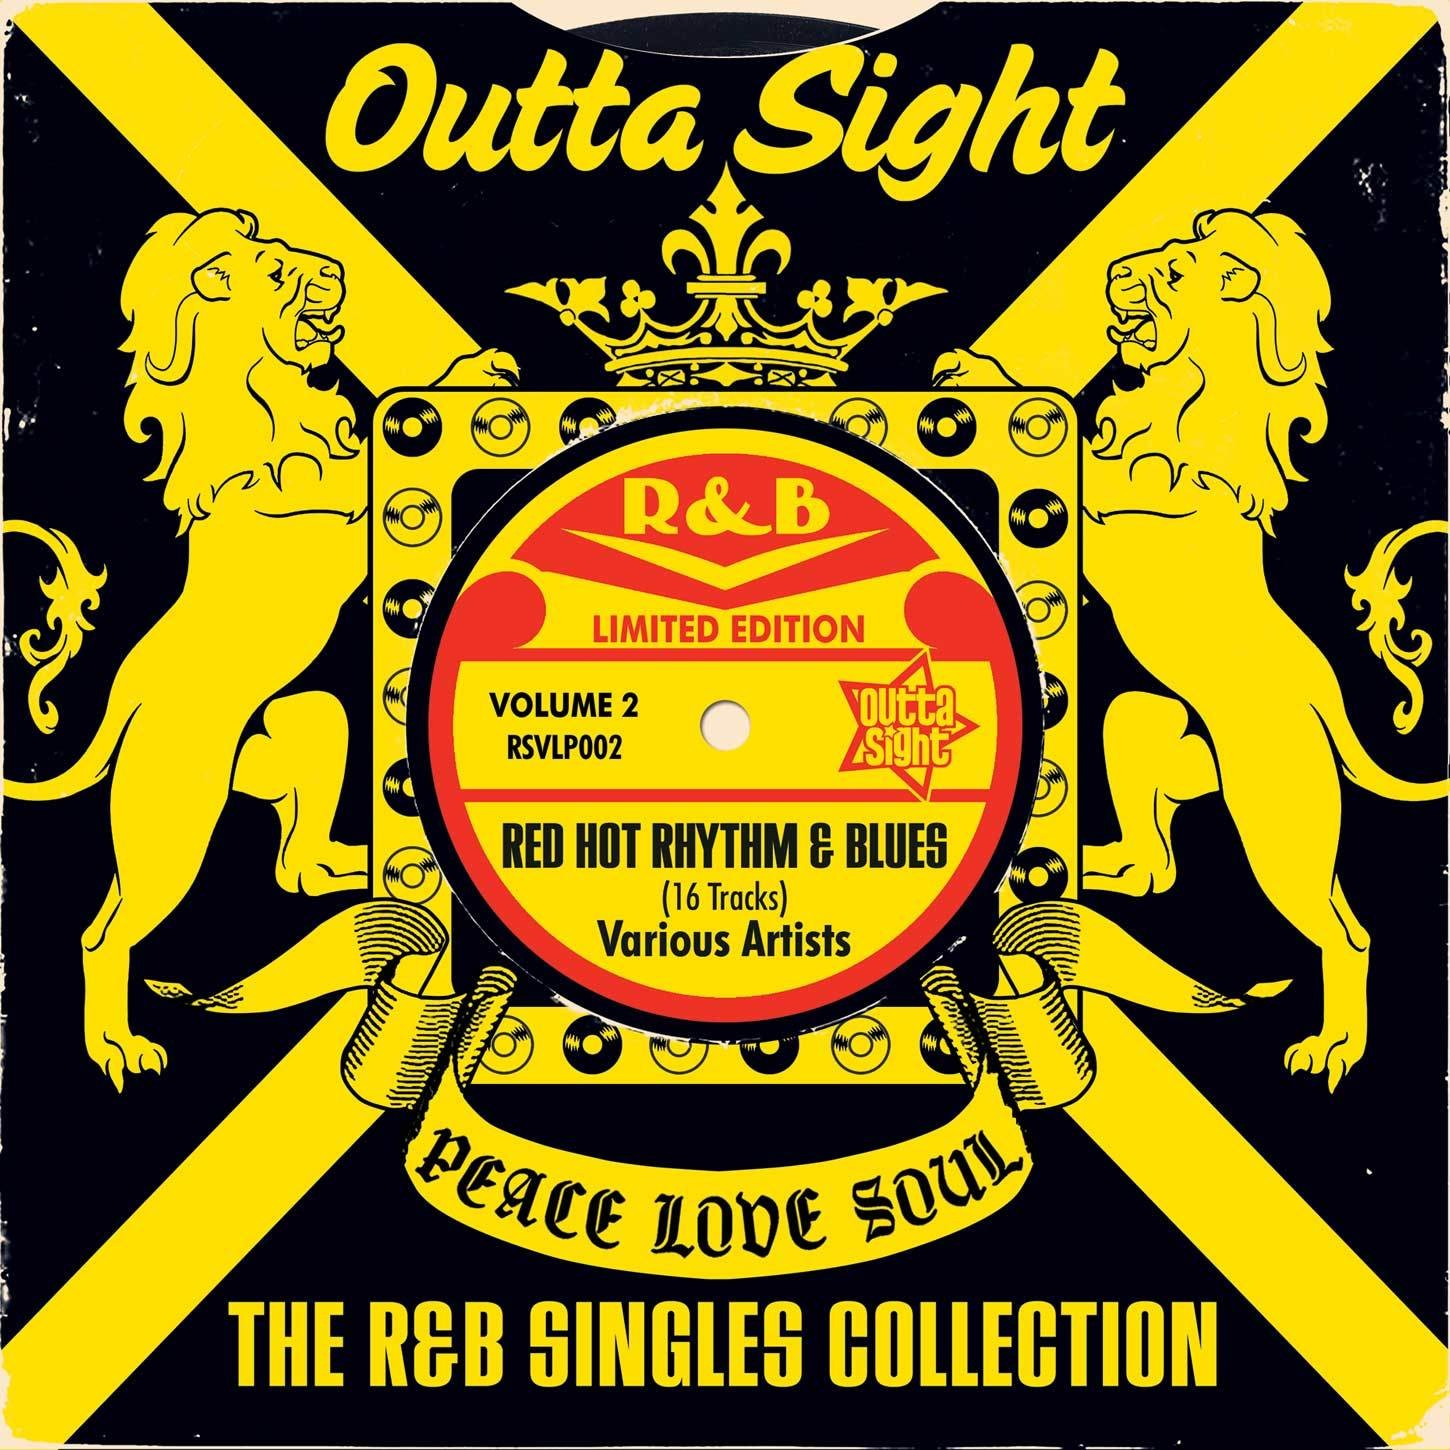 THE R&B SINGLES COLLECTION LP VOL. 2